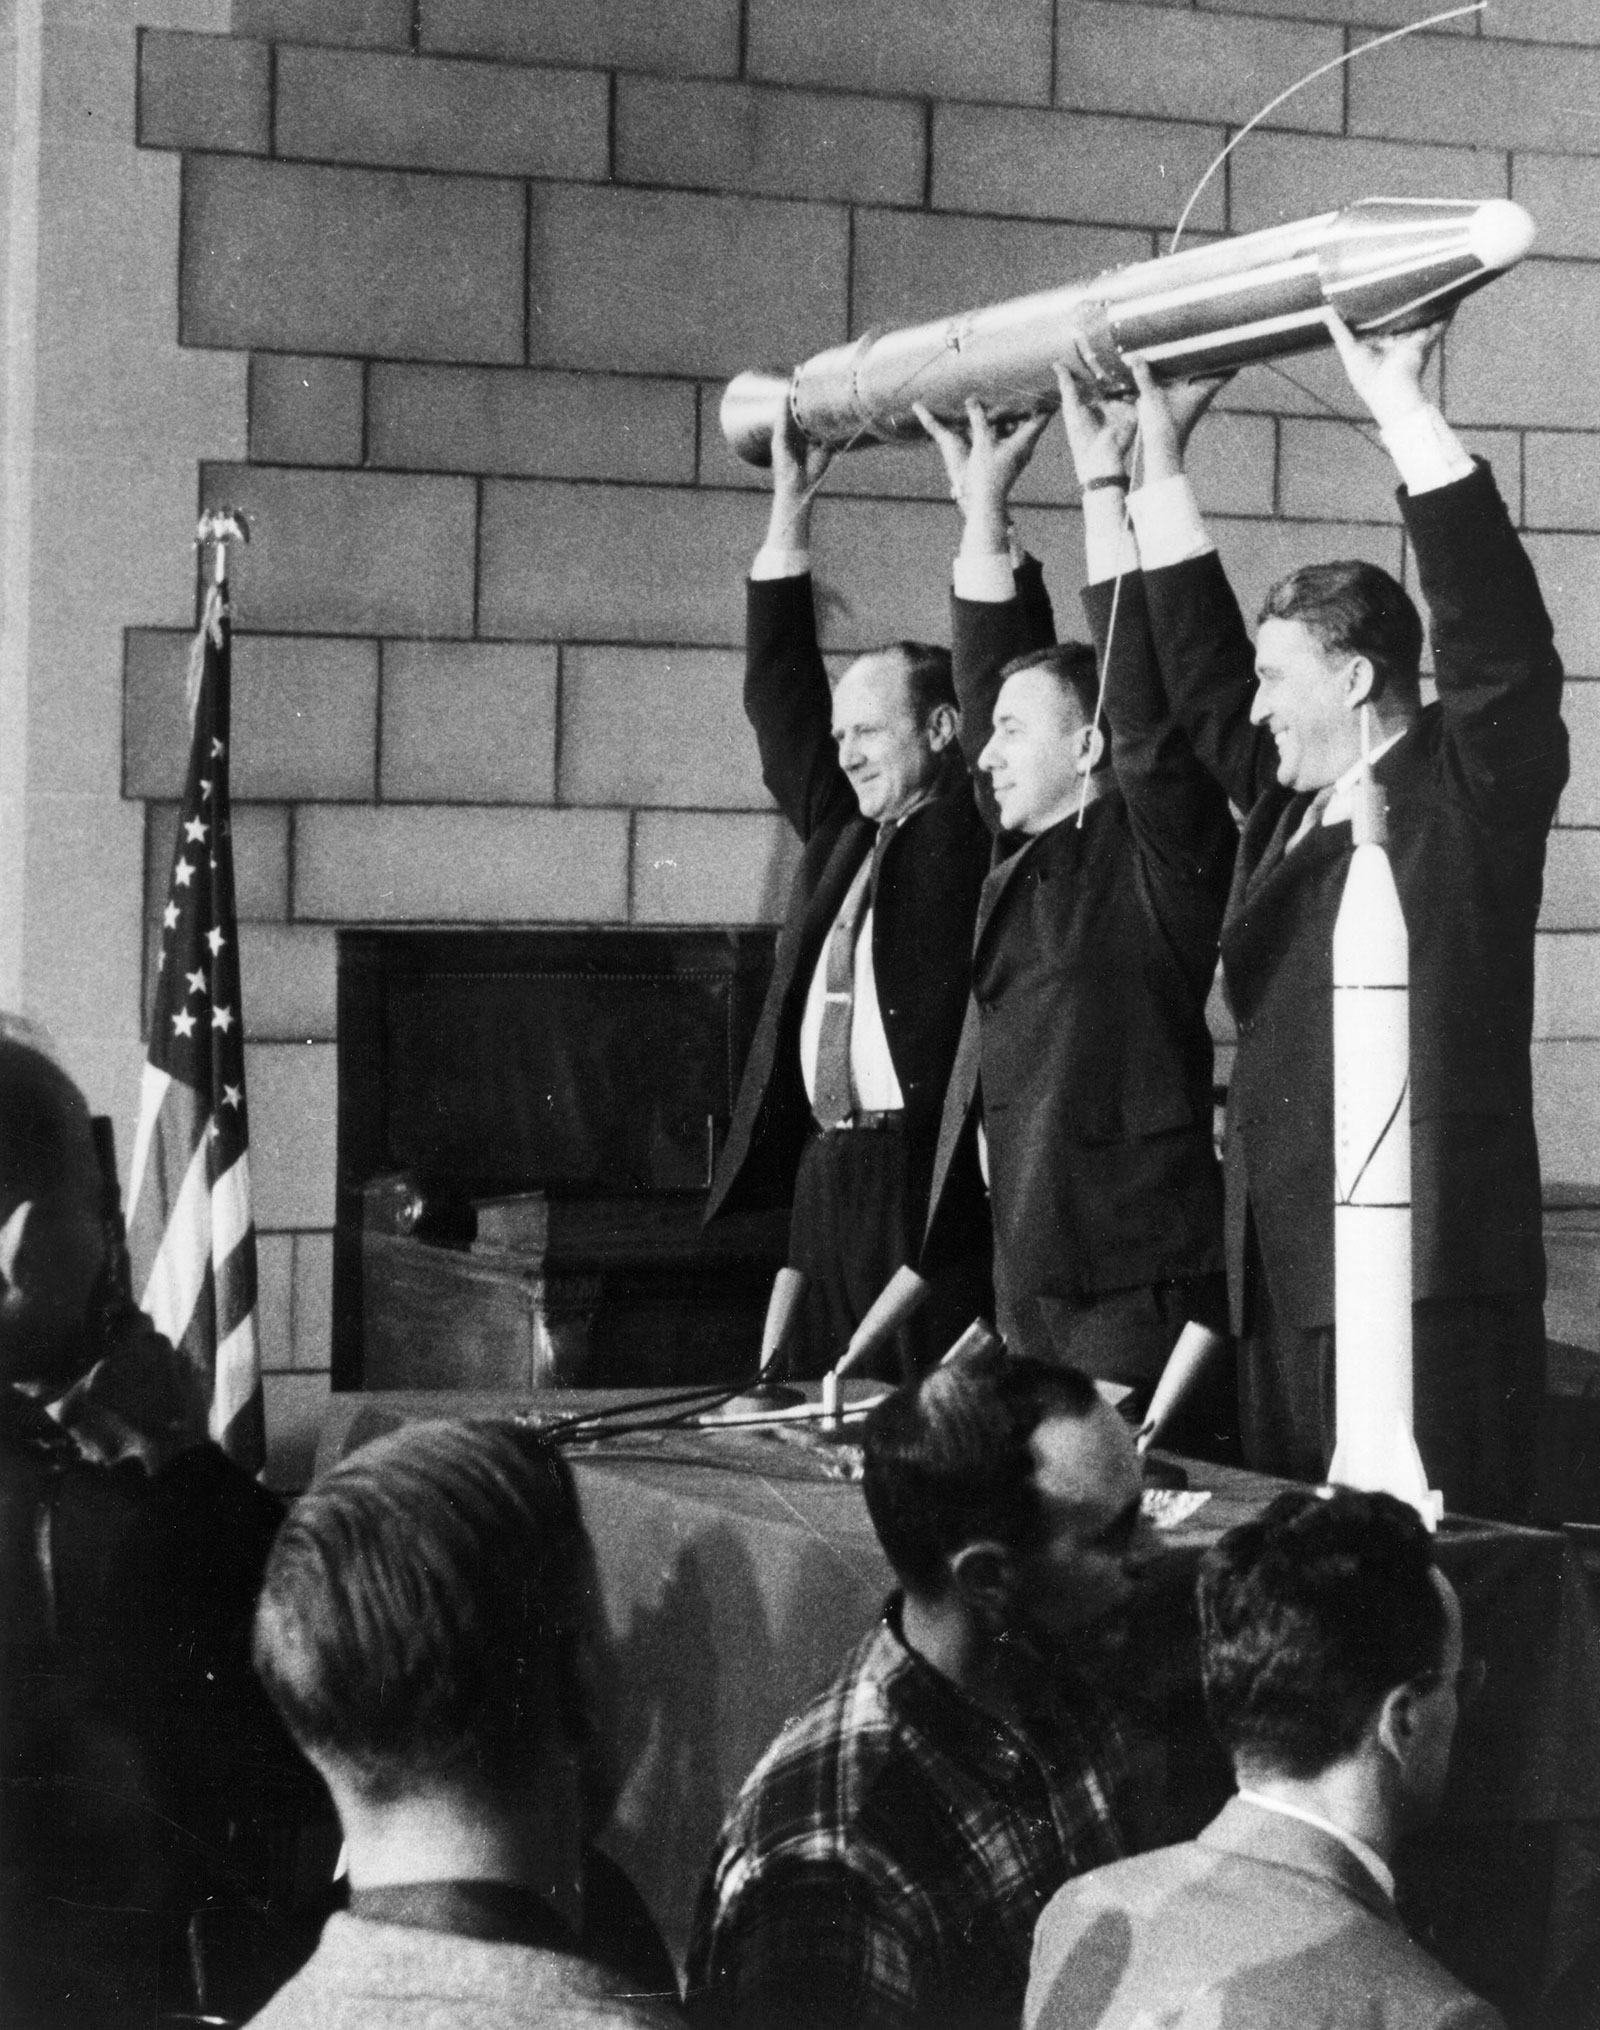 Three smiling men holding up a spacecraft model.